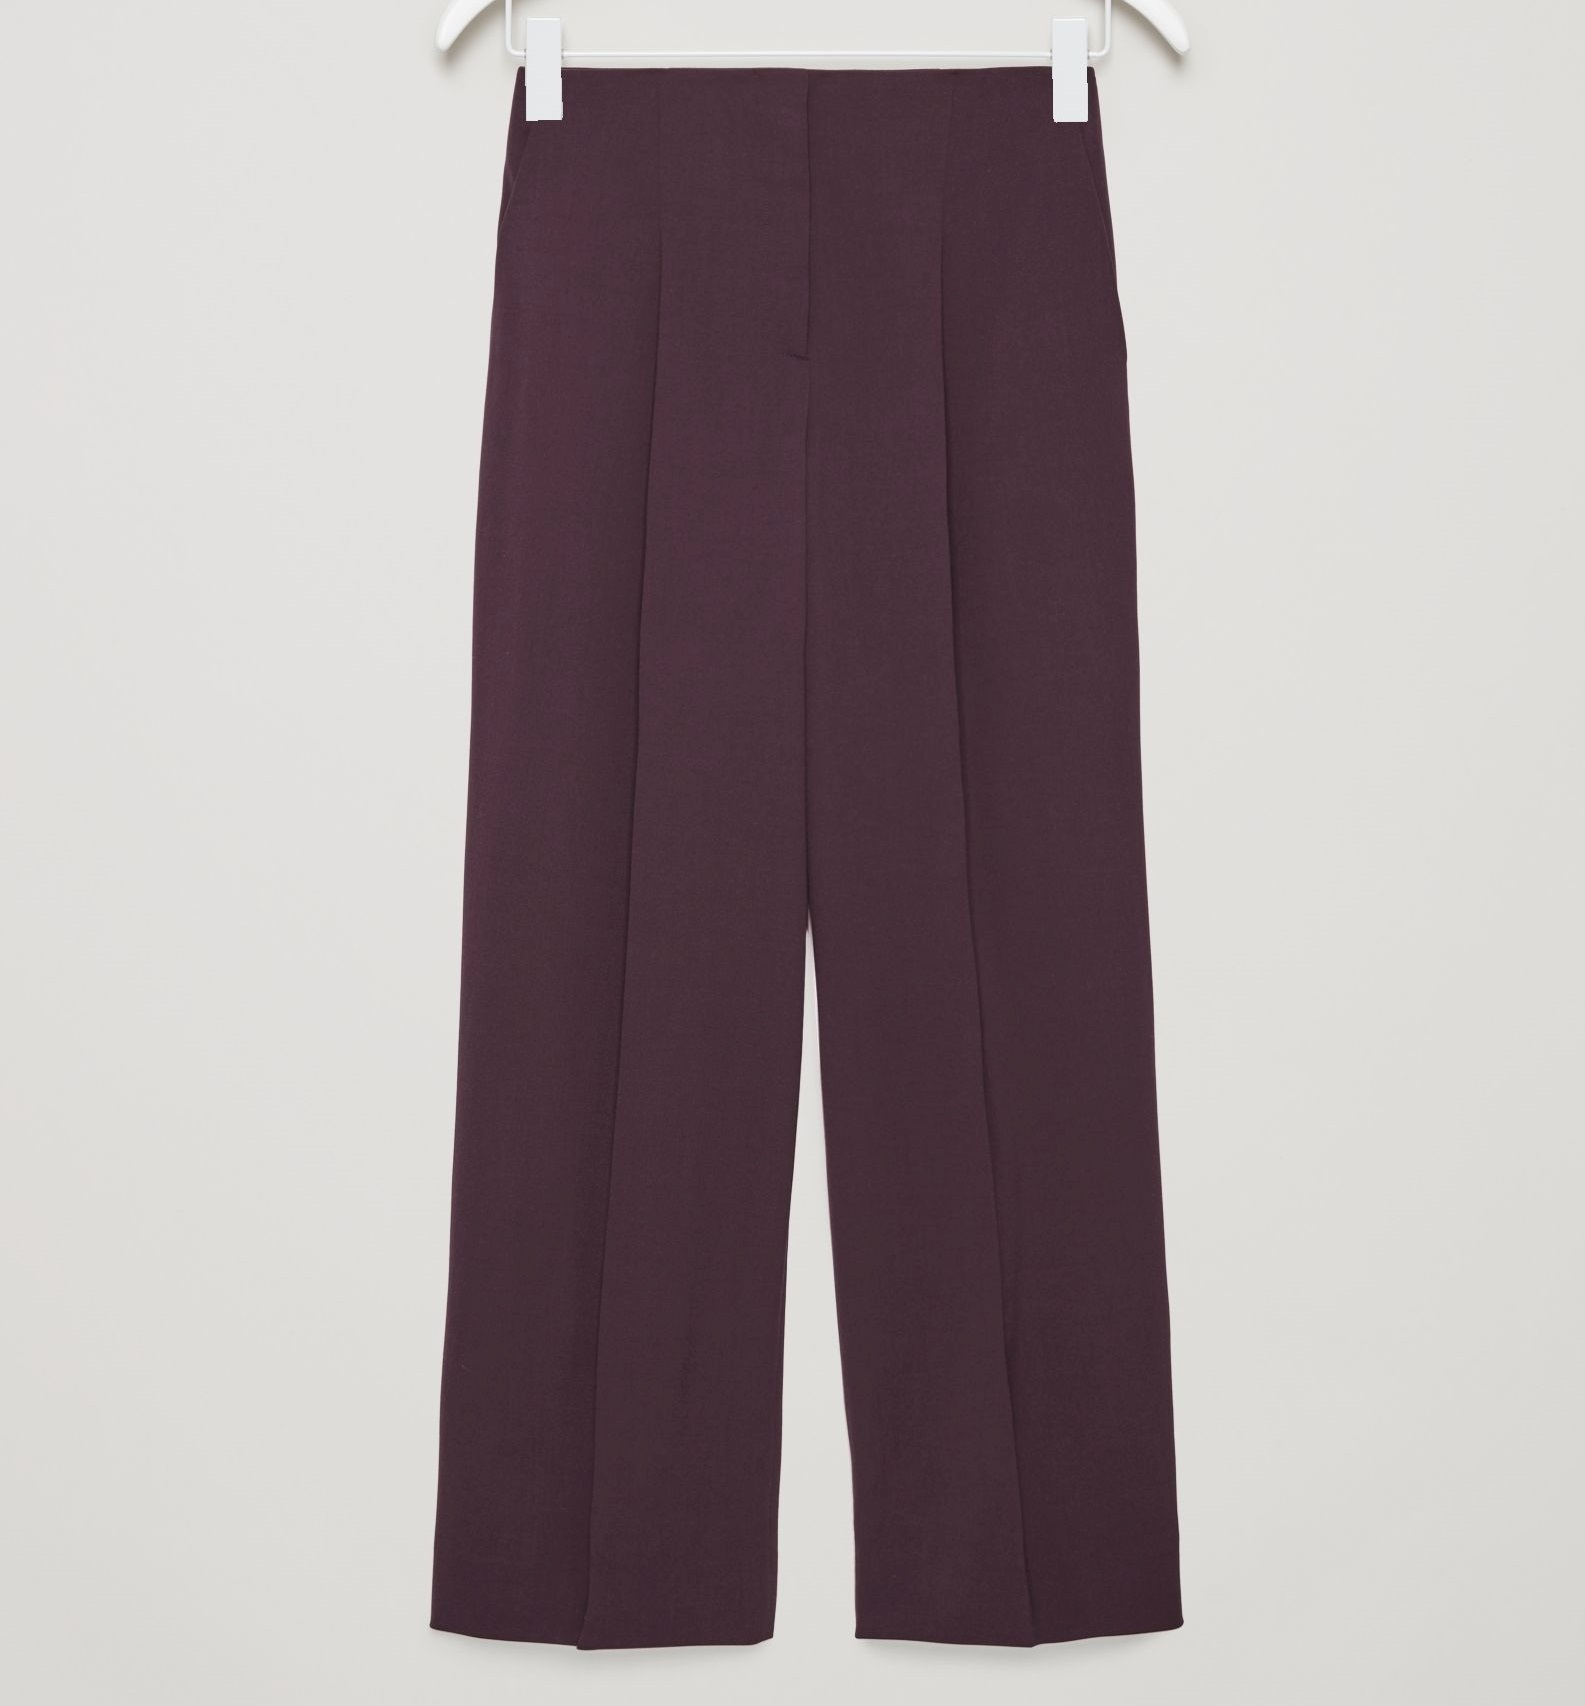 """""""COS""""WIDE-LEG TROUSERS WITH PRESS FOLDS BURGUNDY"""